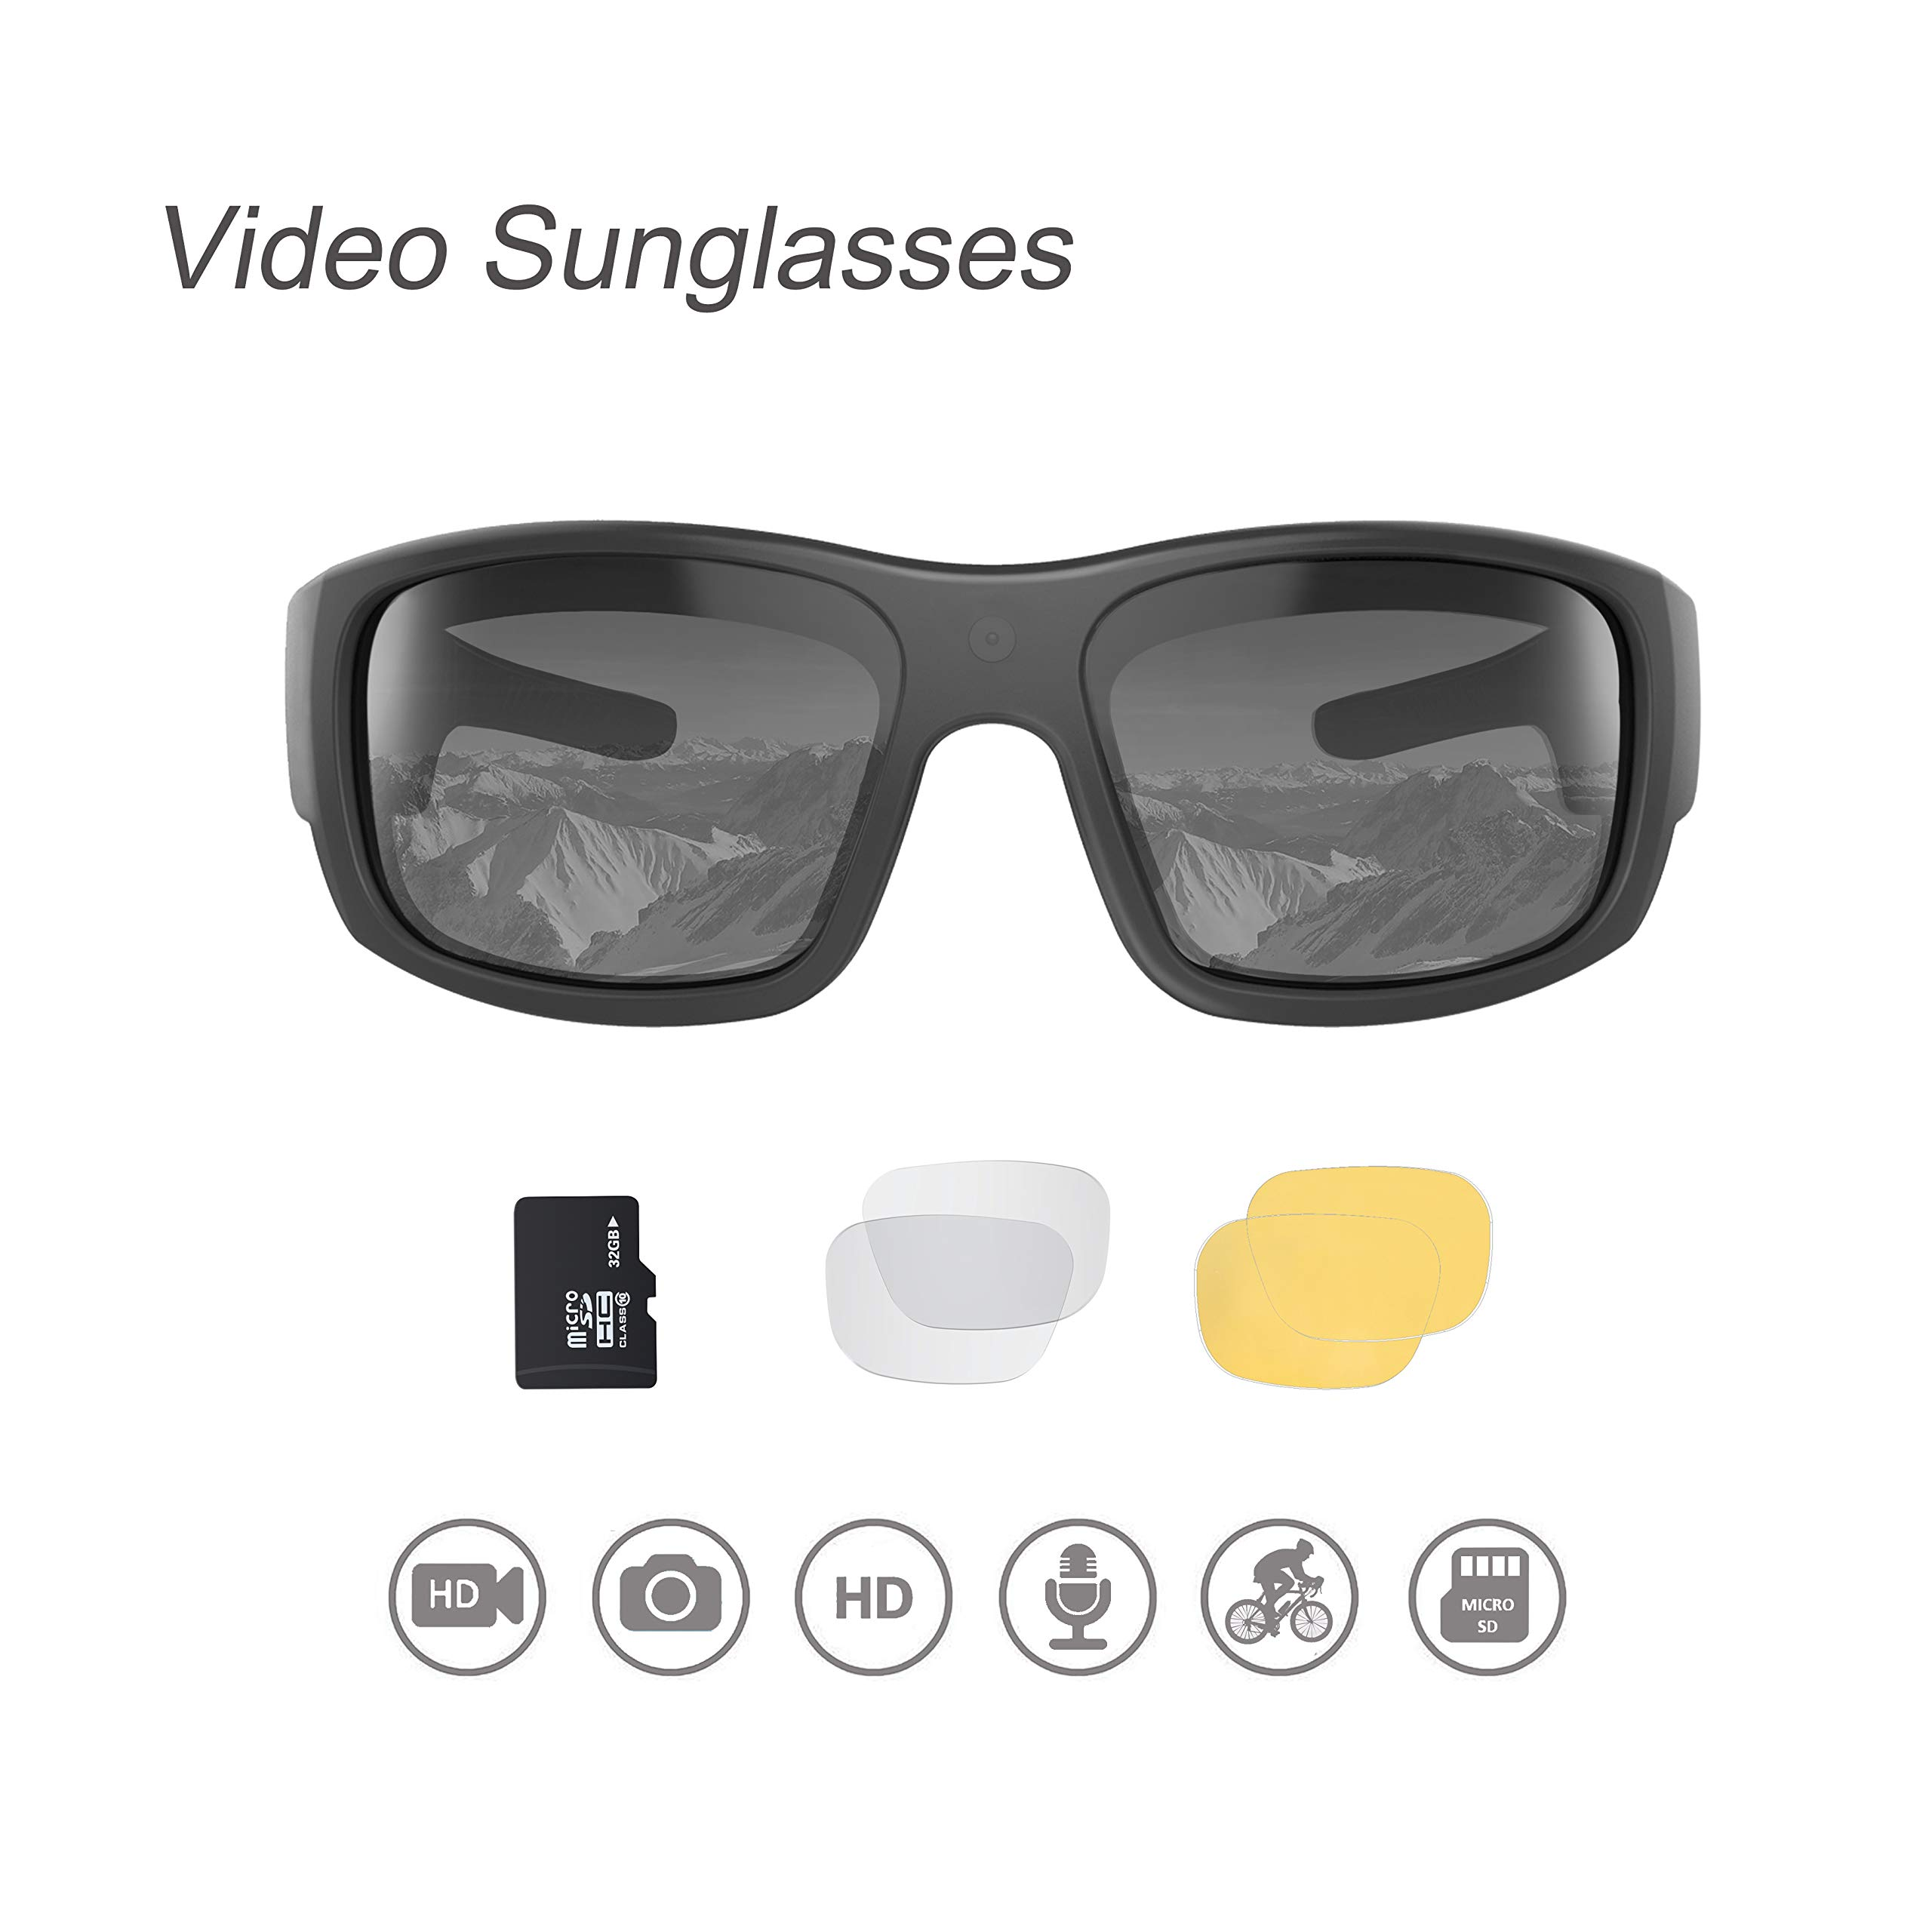 OhO Video Sunglasses,32GB 1080 HD Video Recording Camera for 1.5 Hours Video Recording Time with Built in 15MP Camera and Polarized UV400 Protection Safety and Interchangeable Lens by OhO sunshine